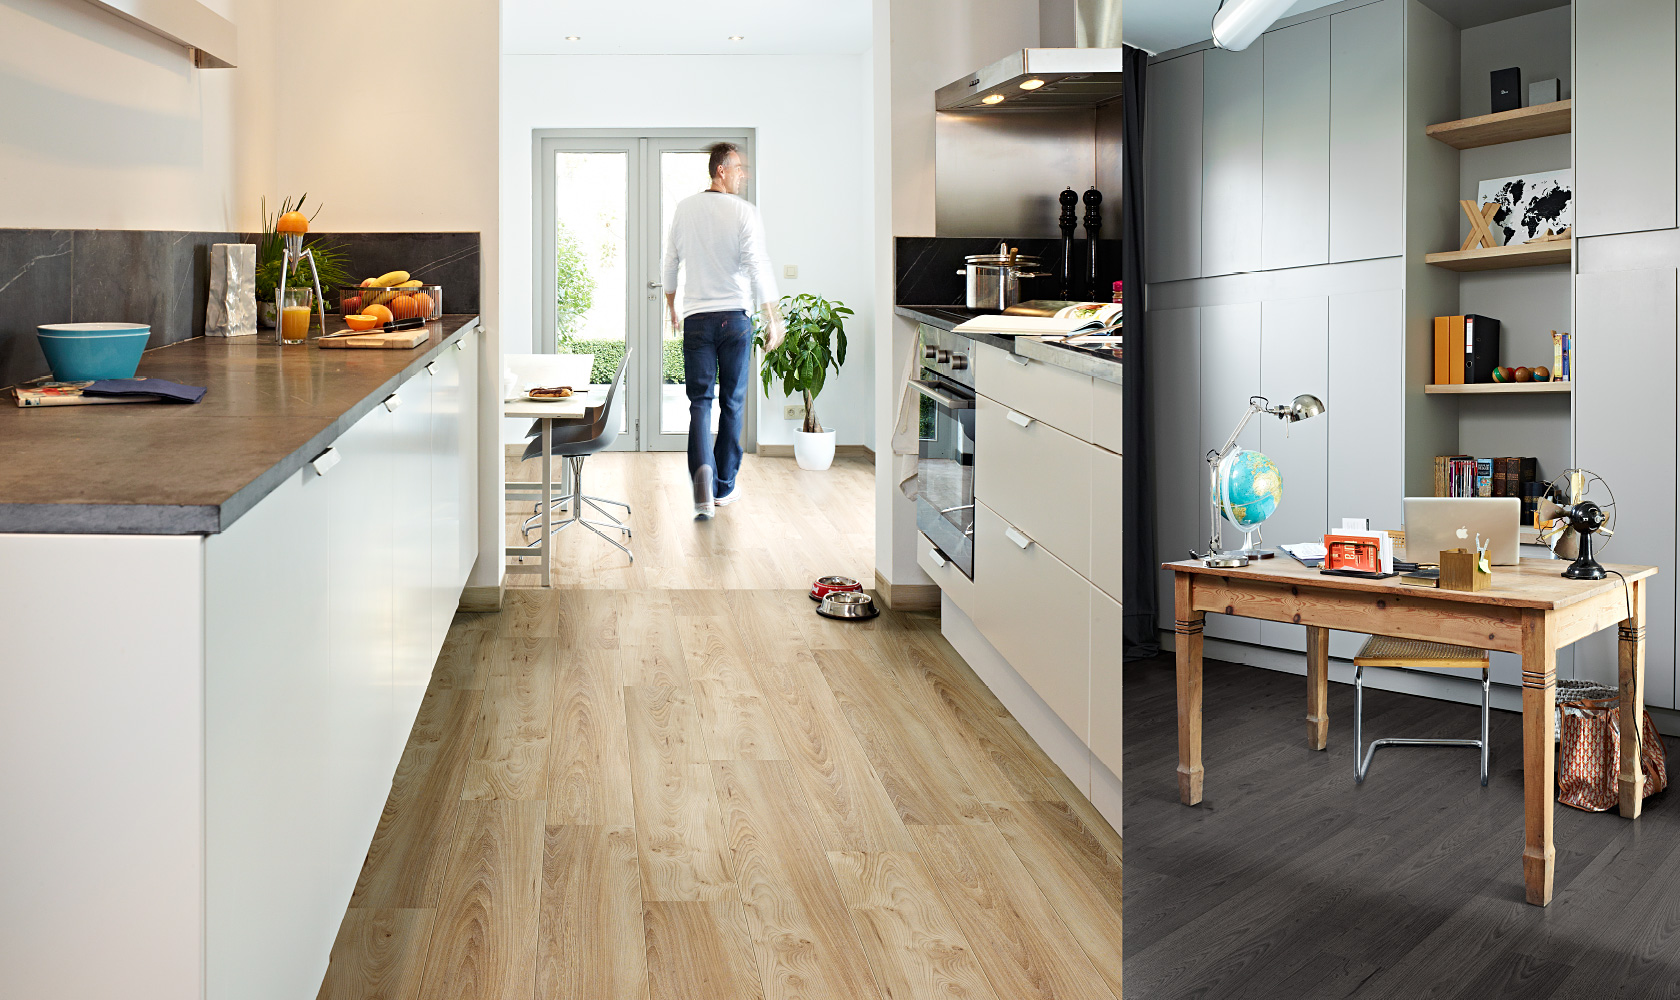 Amigo's is proud to offer Balterio Laminate flooring made in Belgium. With quality this good, it's great for kitchens and bathrooms.